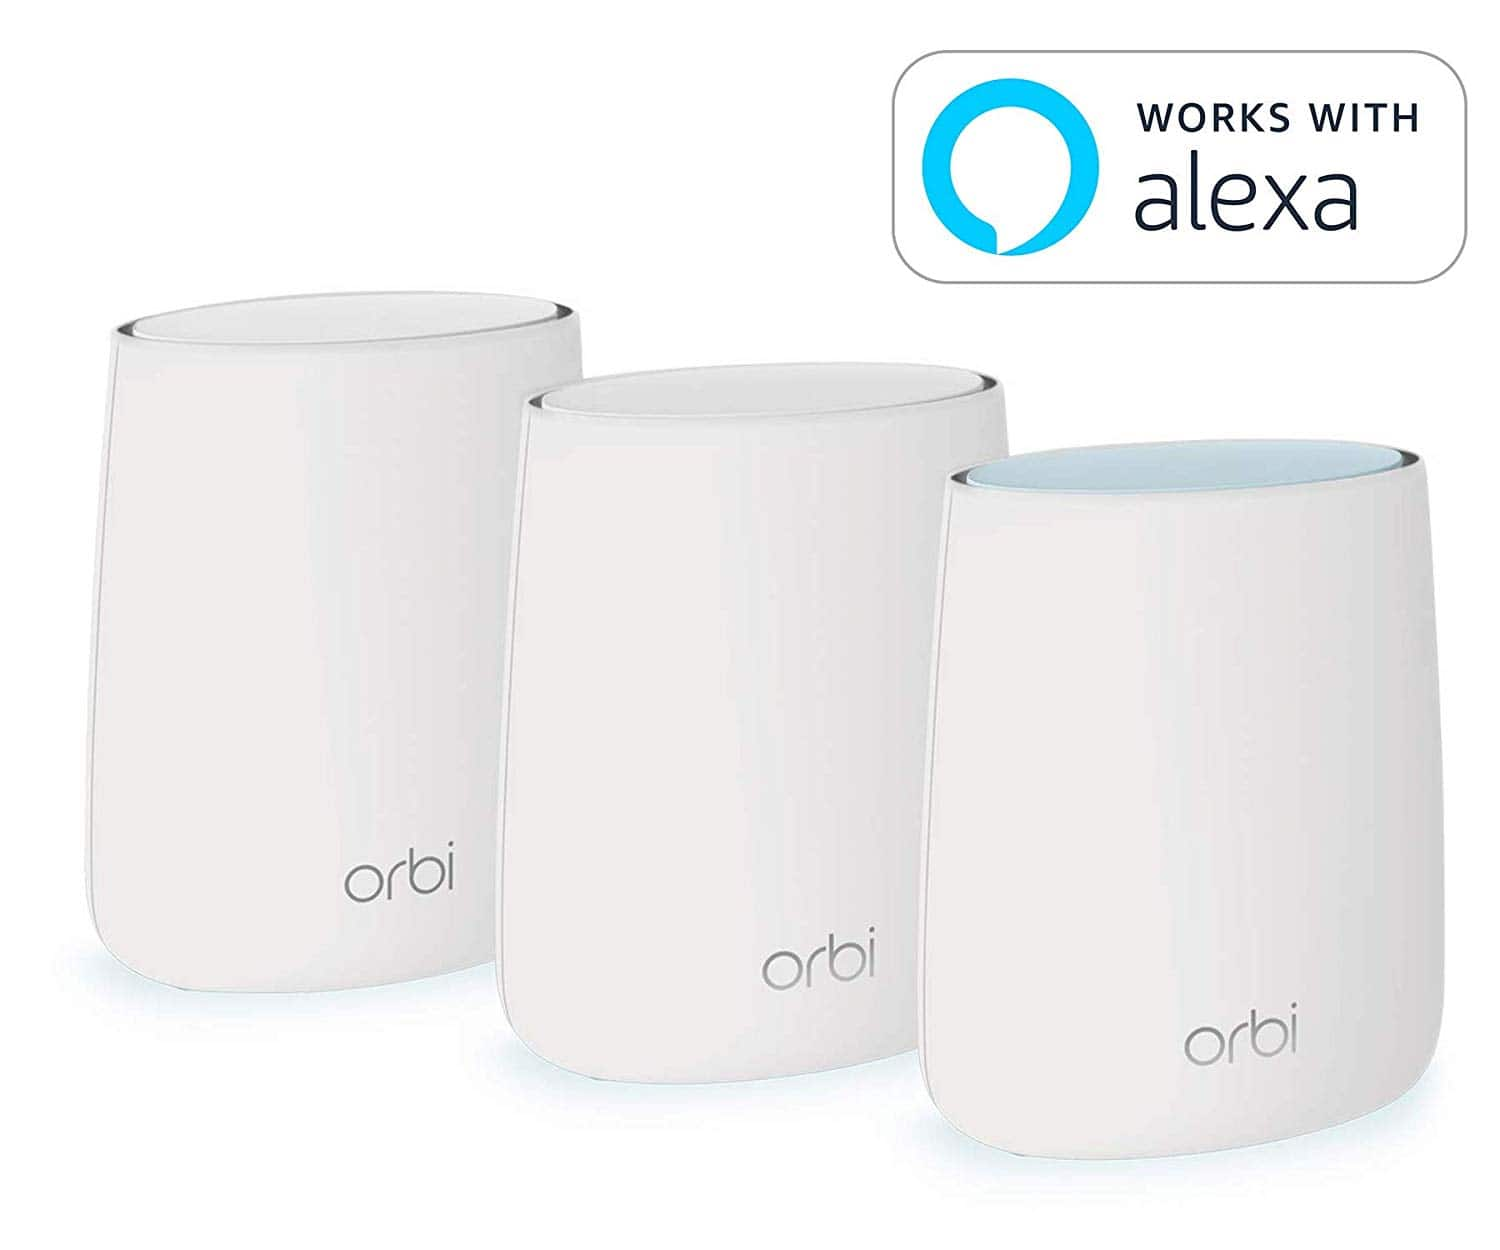 Netgear Orbi RBK23 Mesh WiFi System - WiFi router and 2 satellite extenders $209.99